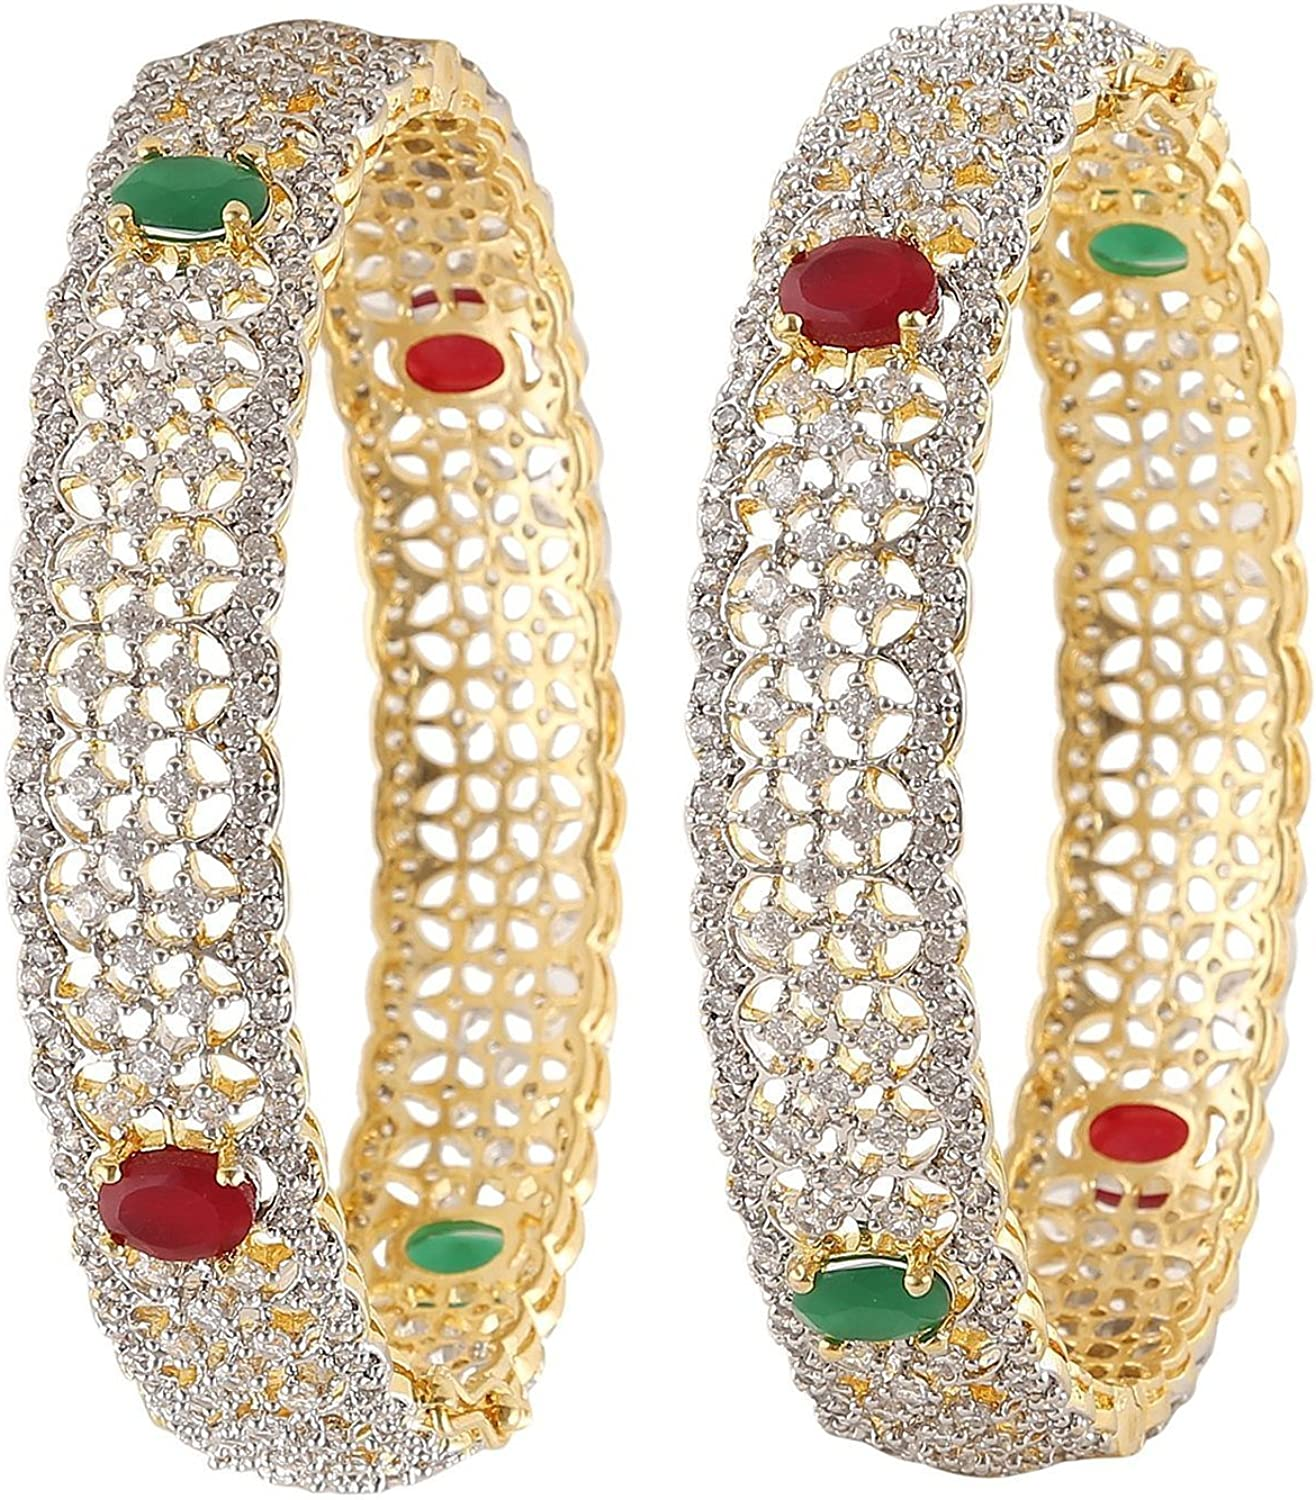 Shiv/_Collection Ethinc Traditional Fashion Gold Tone CZ Stone Indian Bangles Partywear Jewelry 2.4